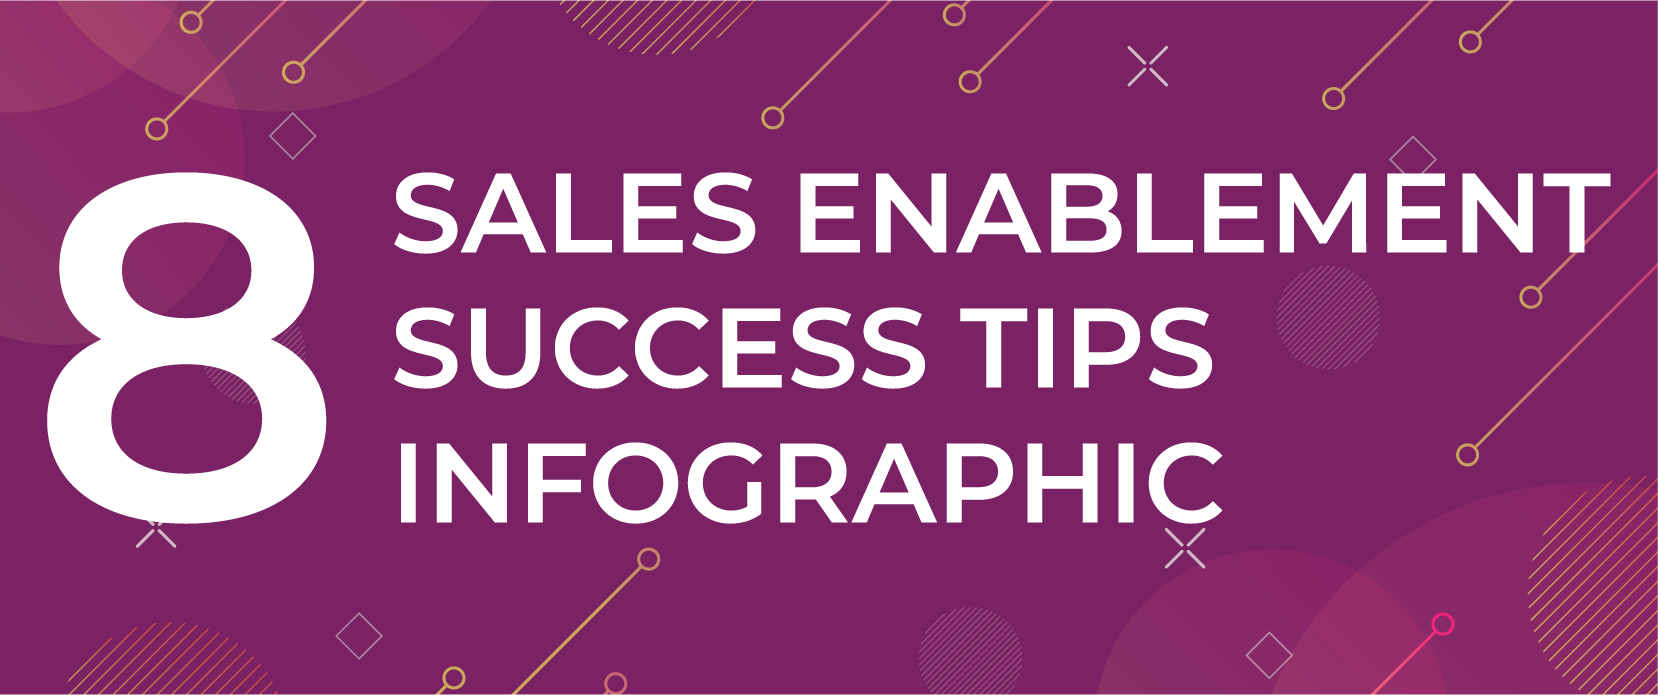 8 Sales Enablement Success Tips [INFOGRAPHIC]